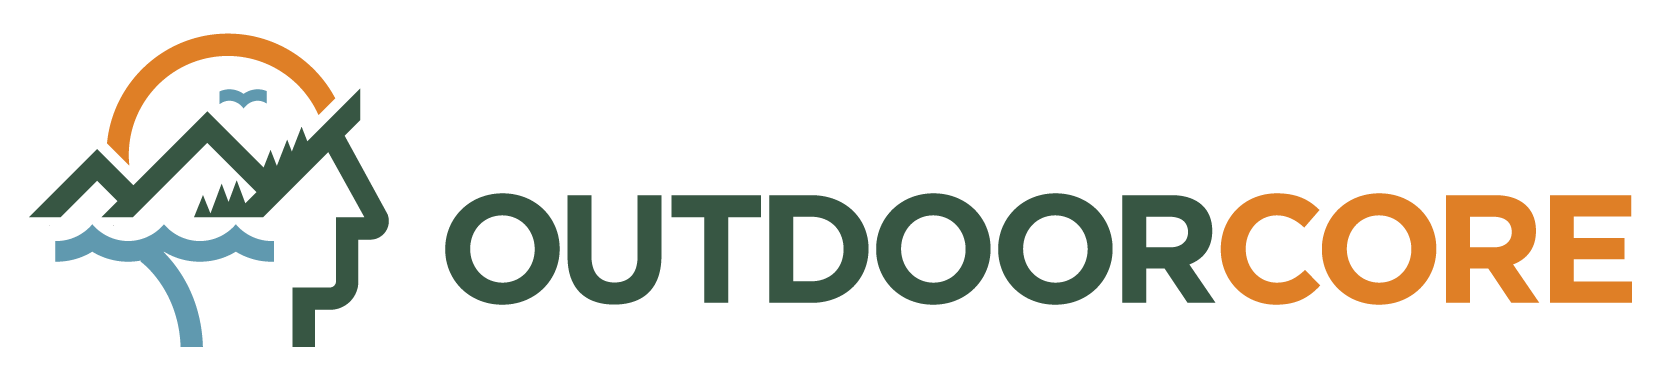 OUTDOORCORE.COM